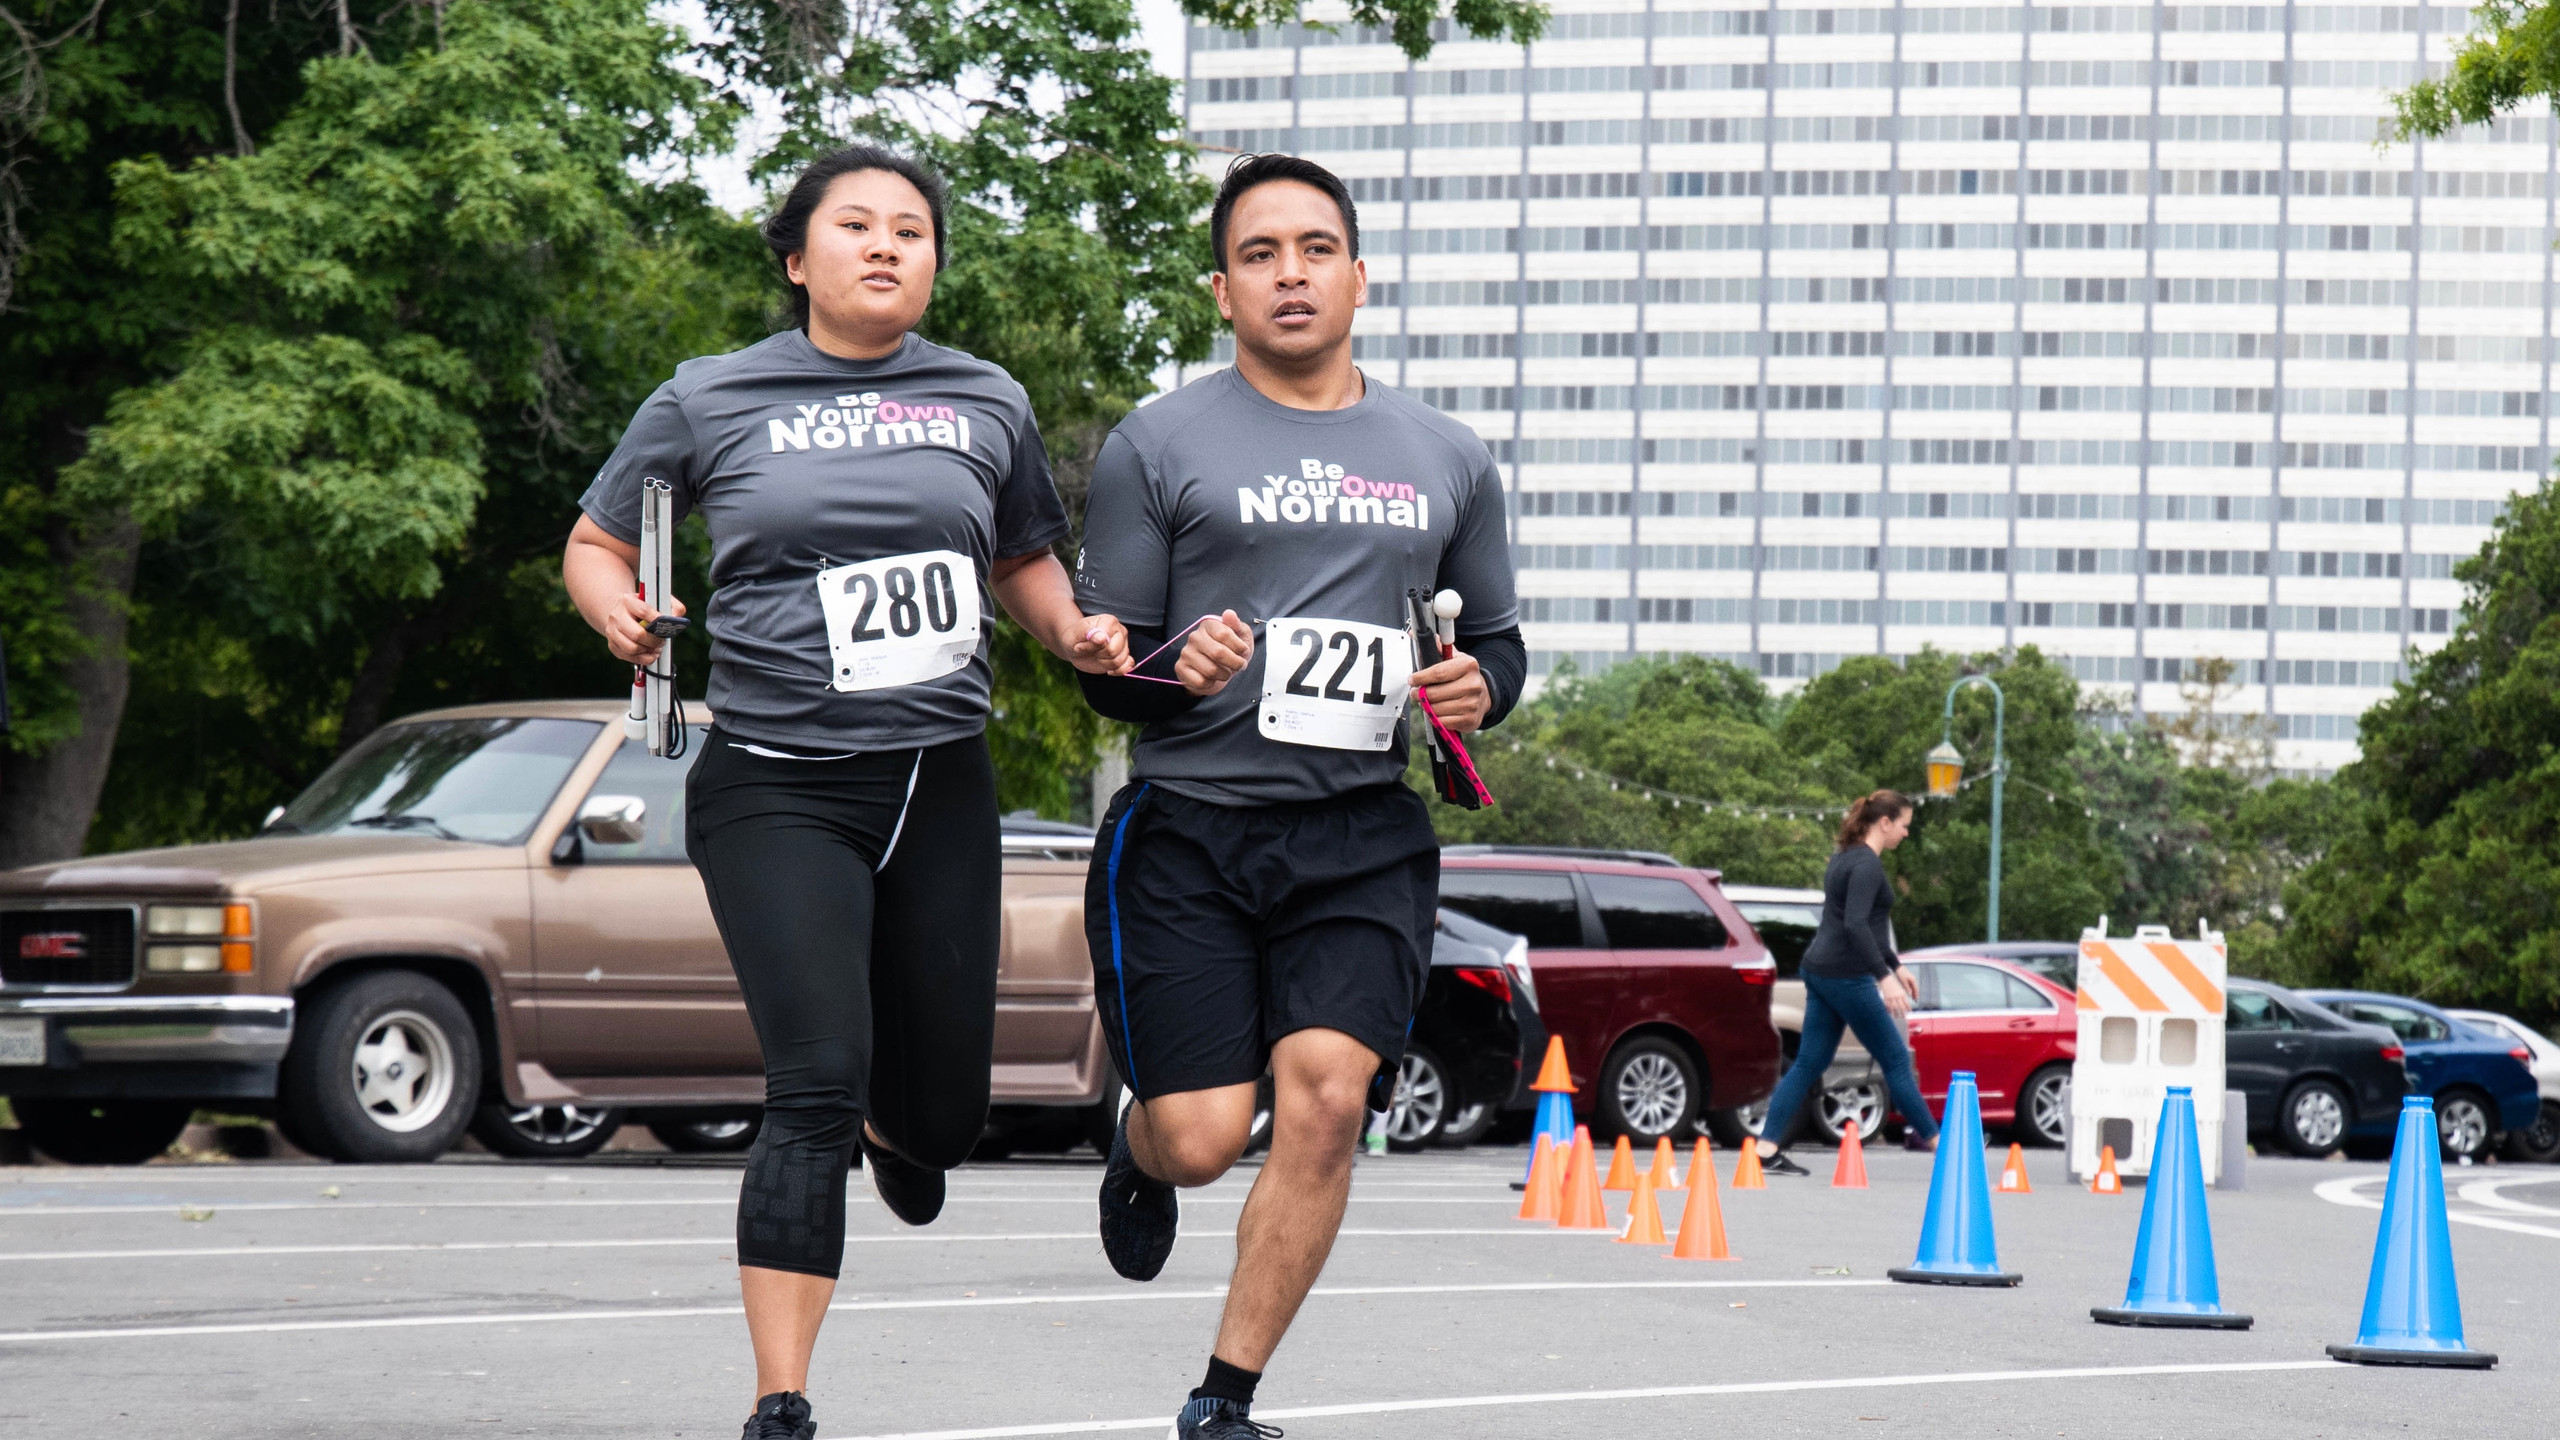 Two people with low vision running together